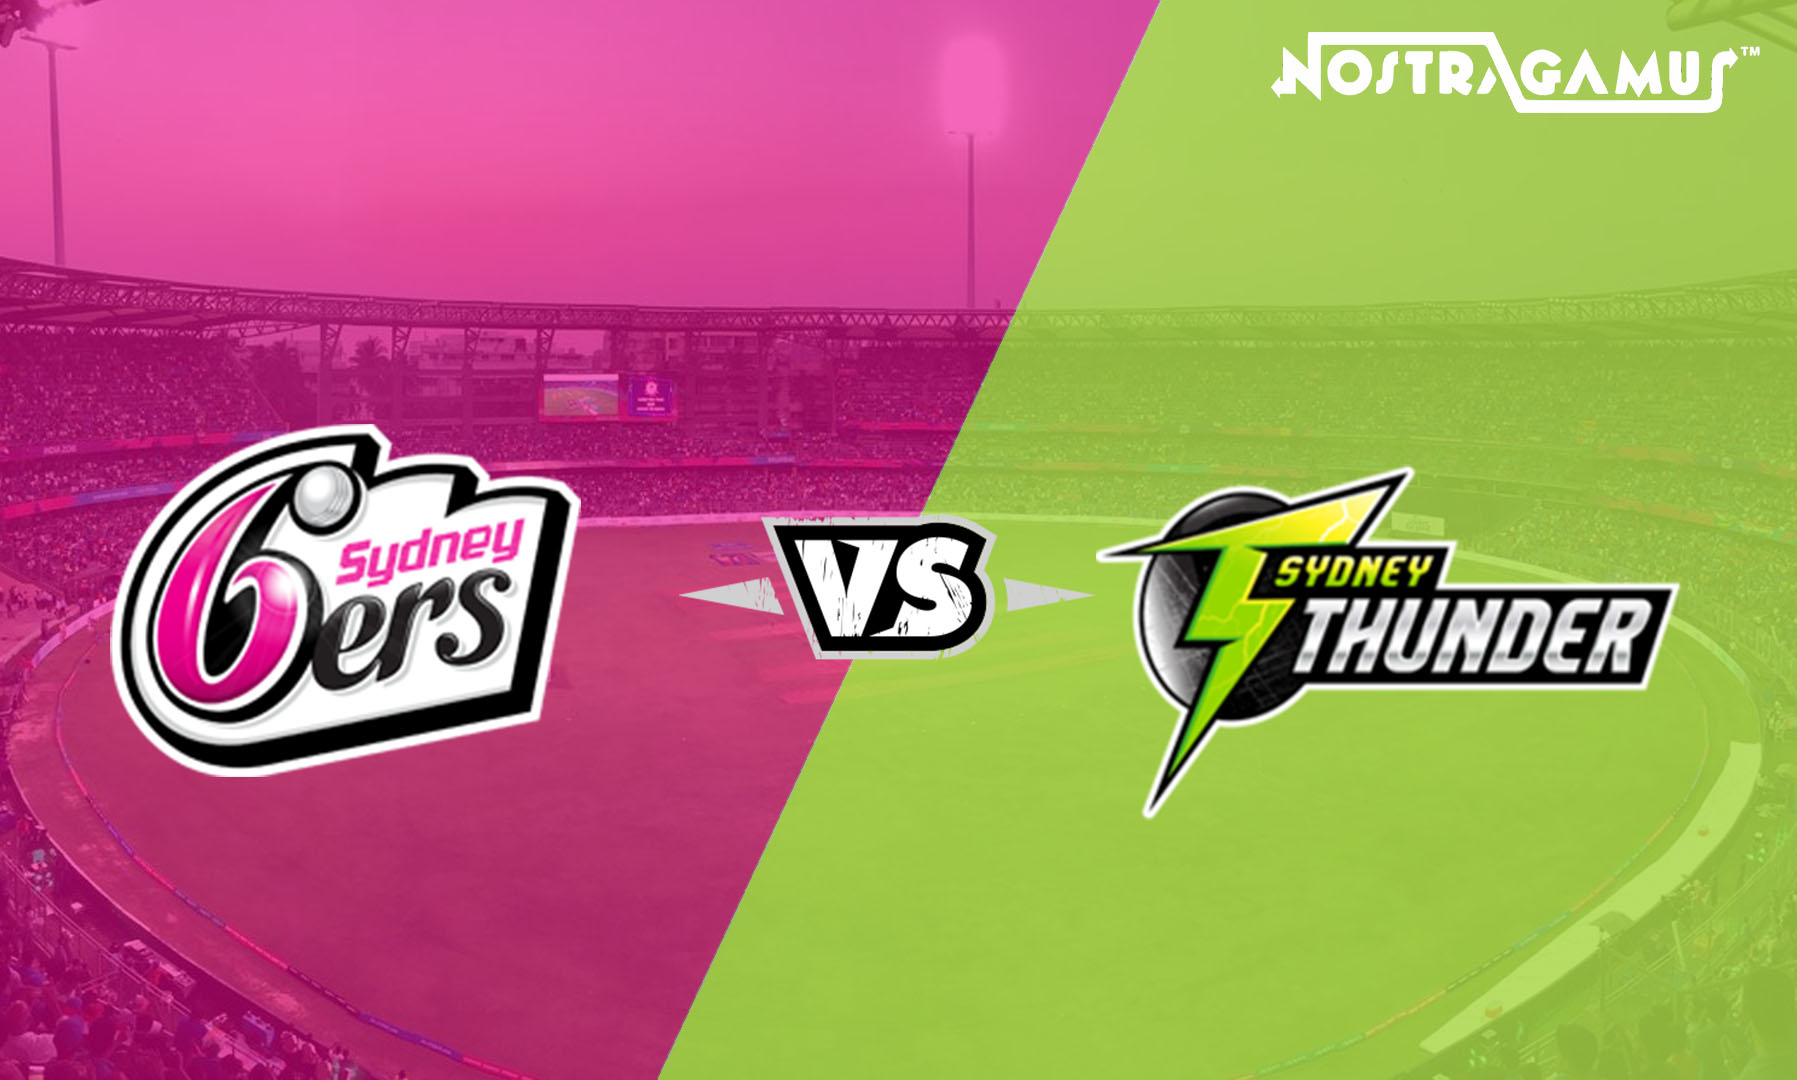 Big Bash League Predictions: Sydney Sixers vs Sydney Thunder